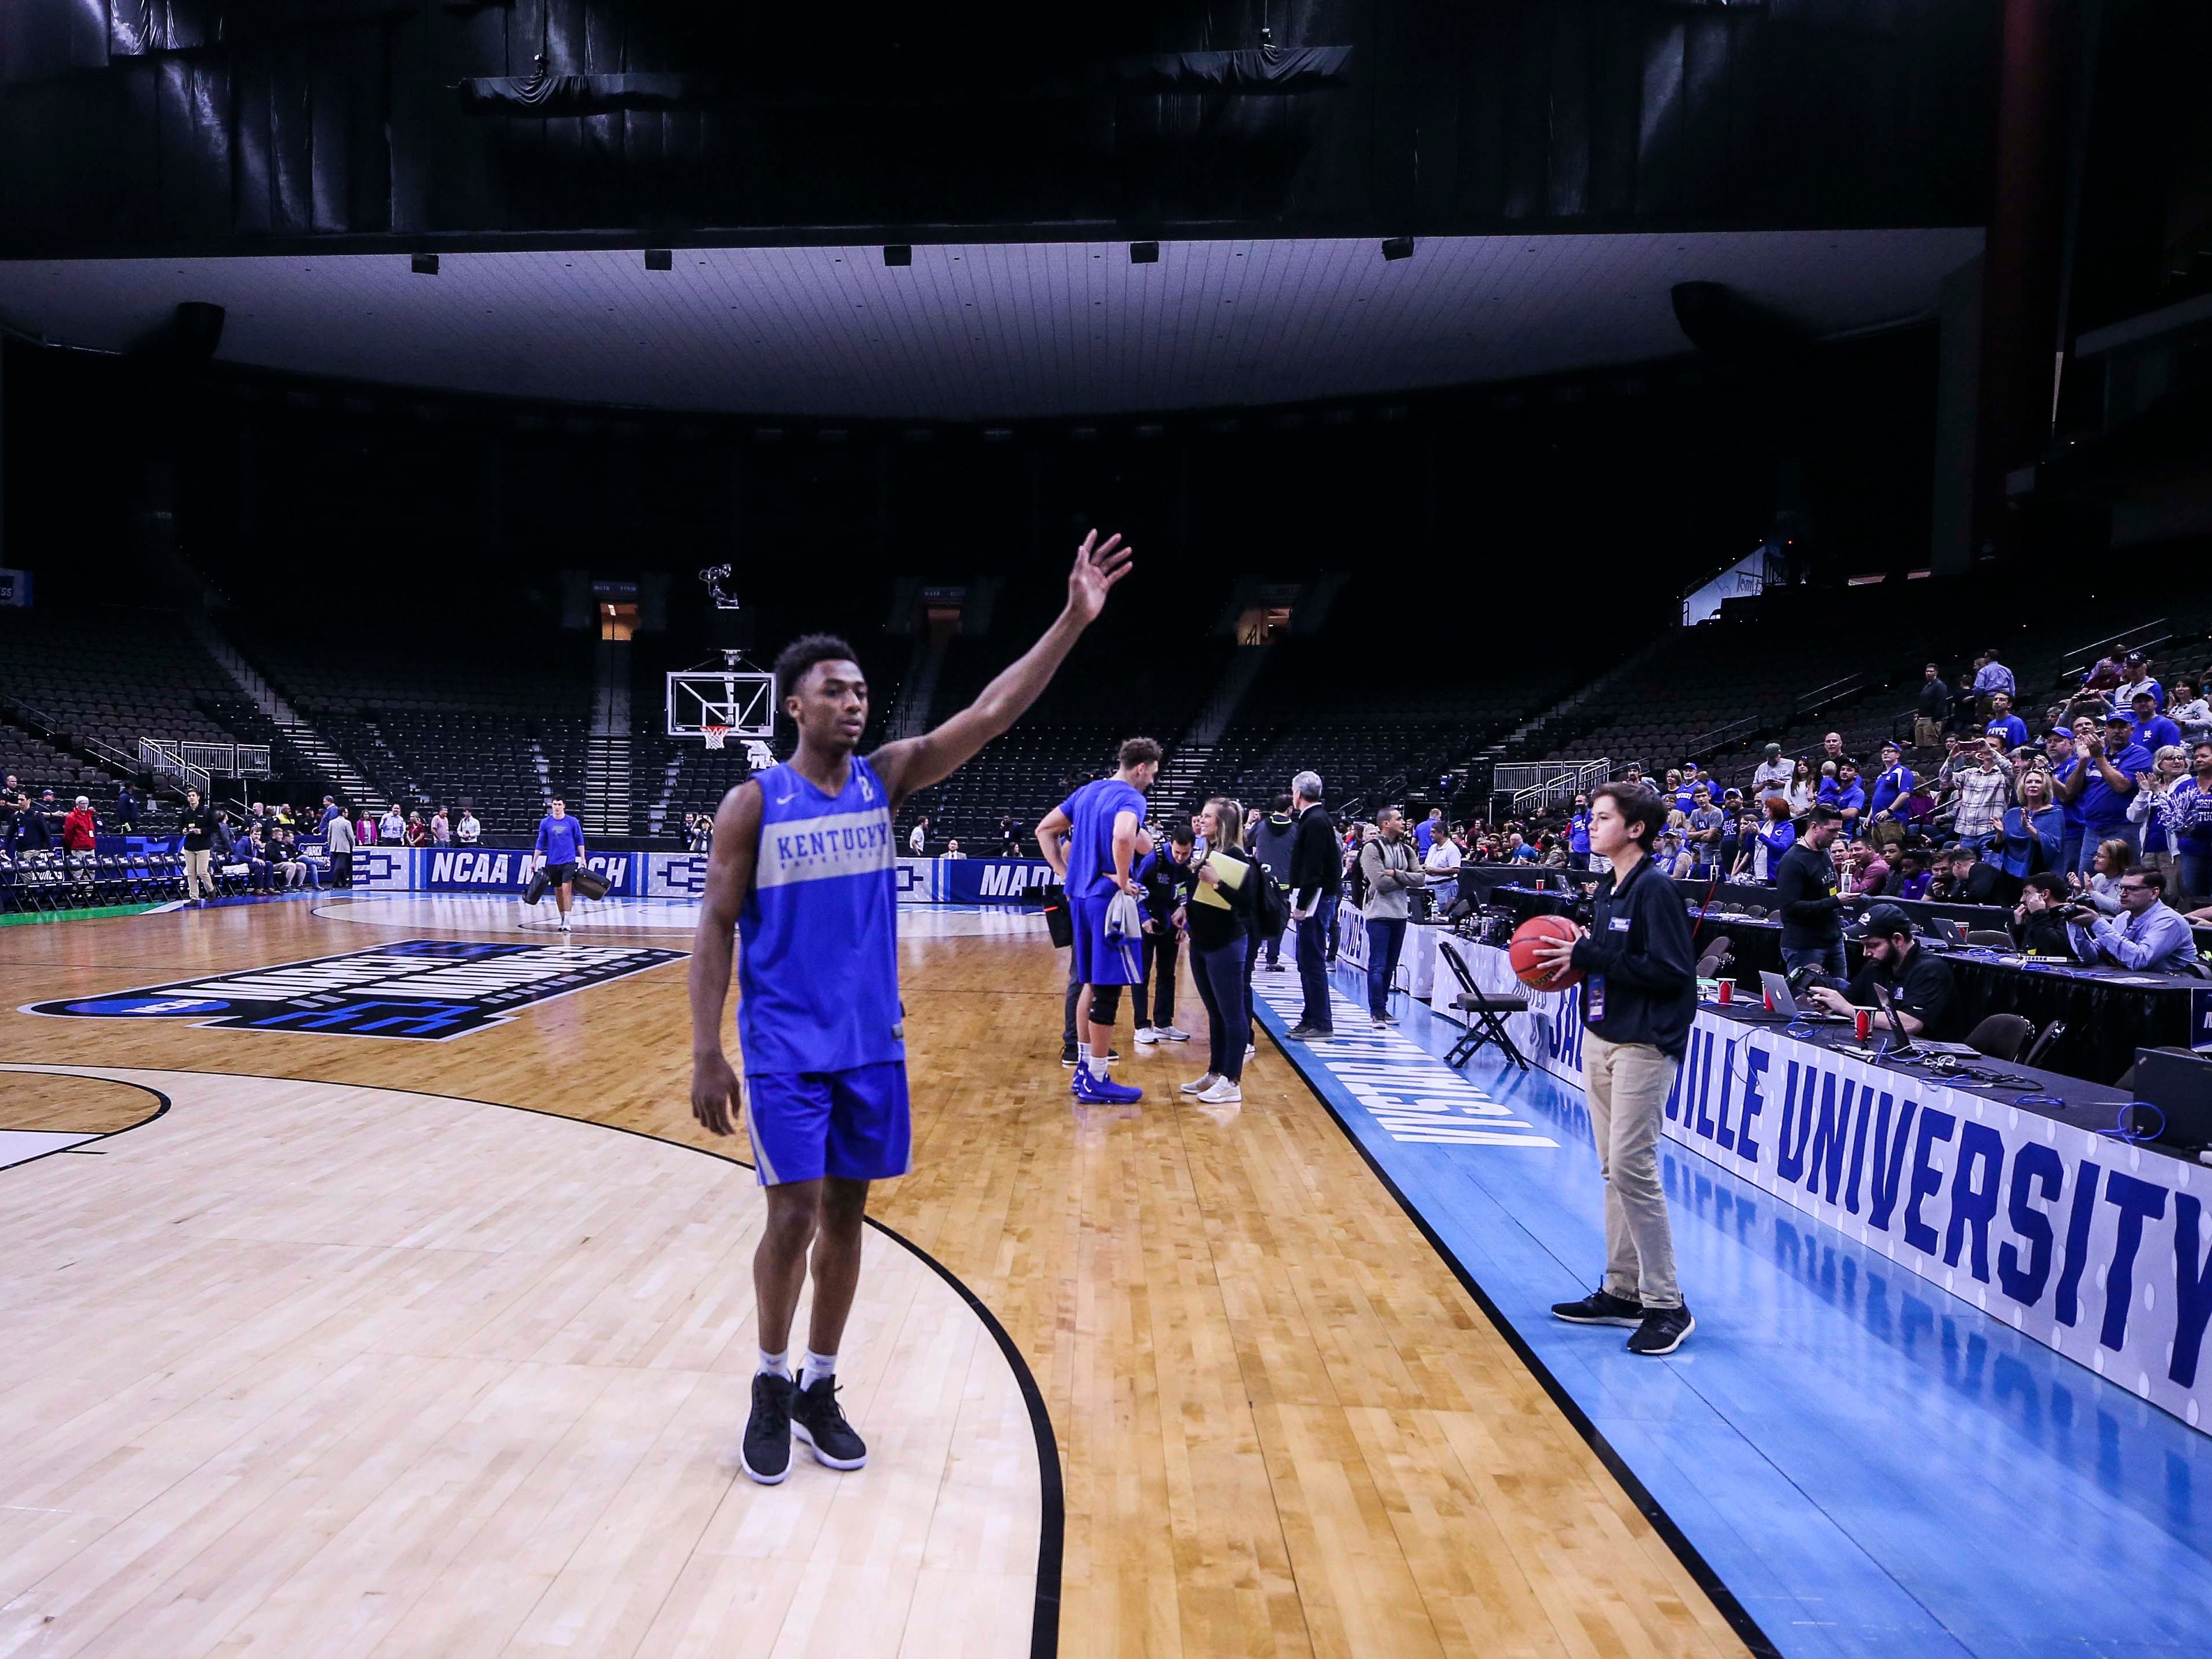 Kentucky's Ashton Hagans waves to the fans after the Wildcats' practice ended Wednesday afternoon in Jacksonville. March 20, 2019